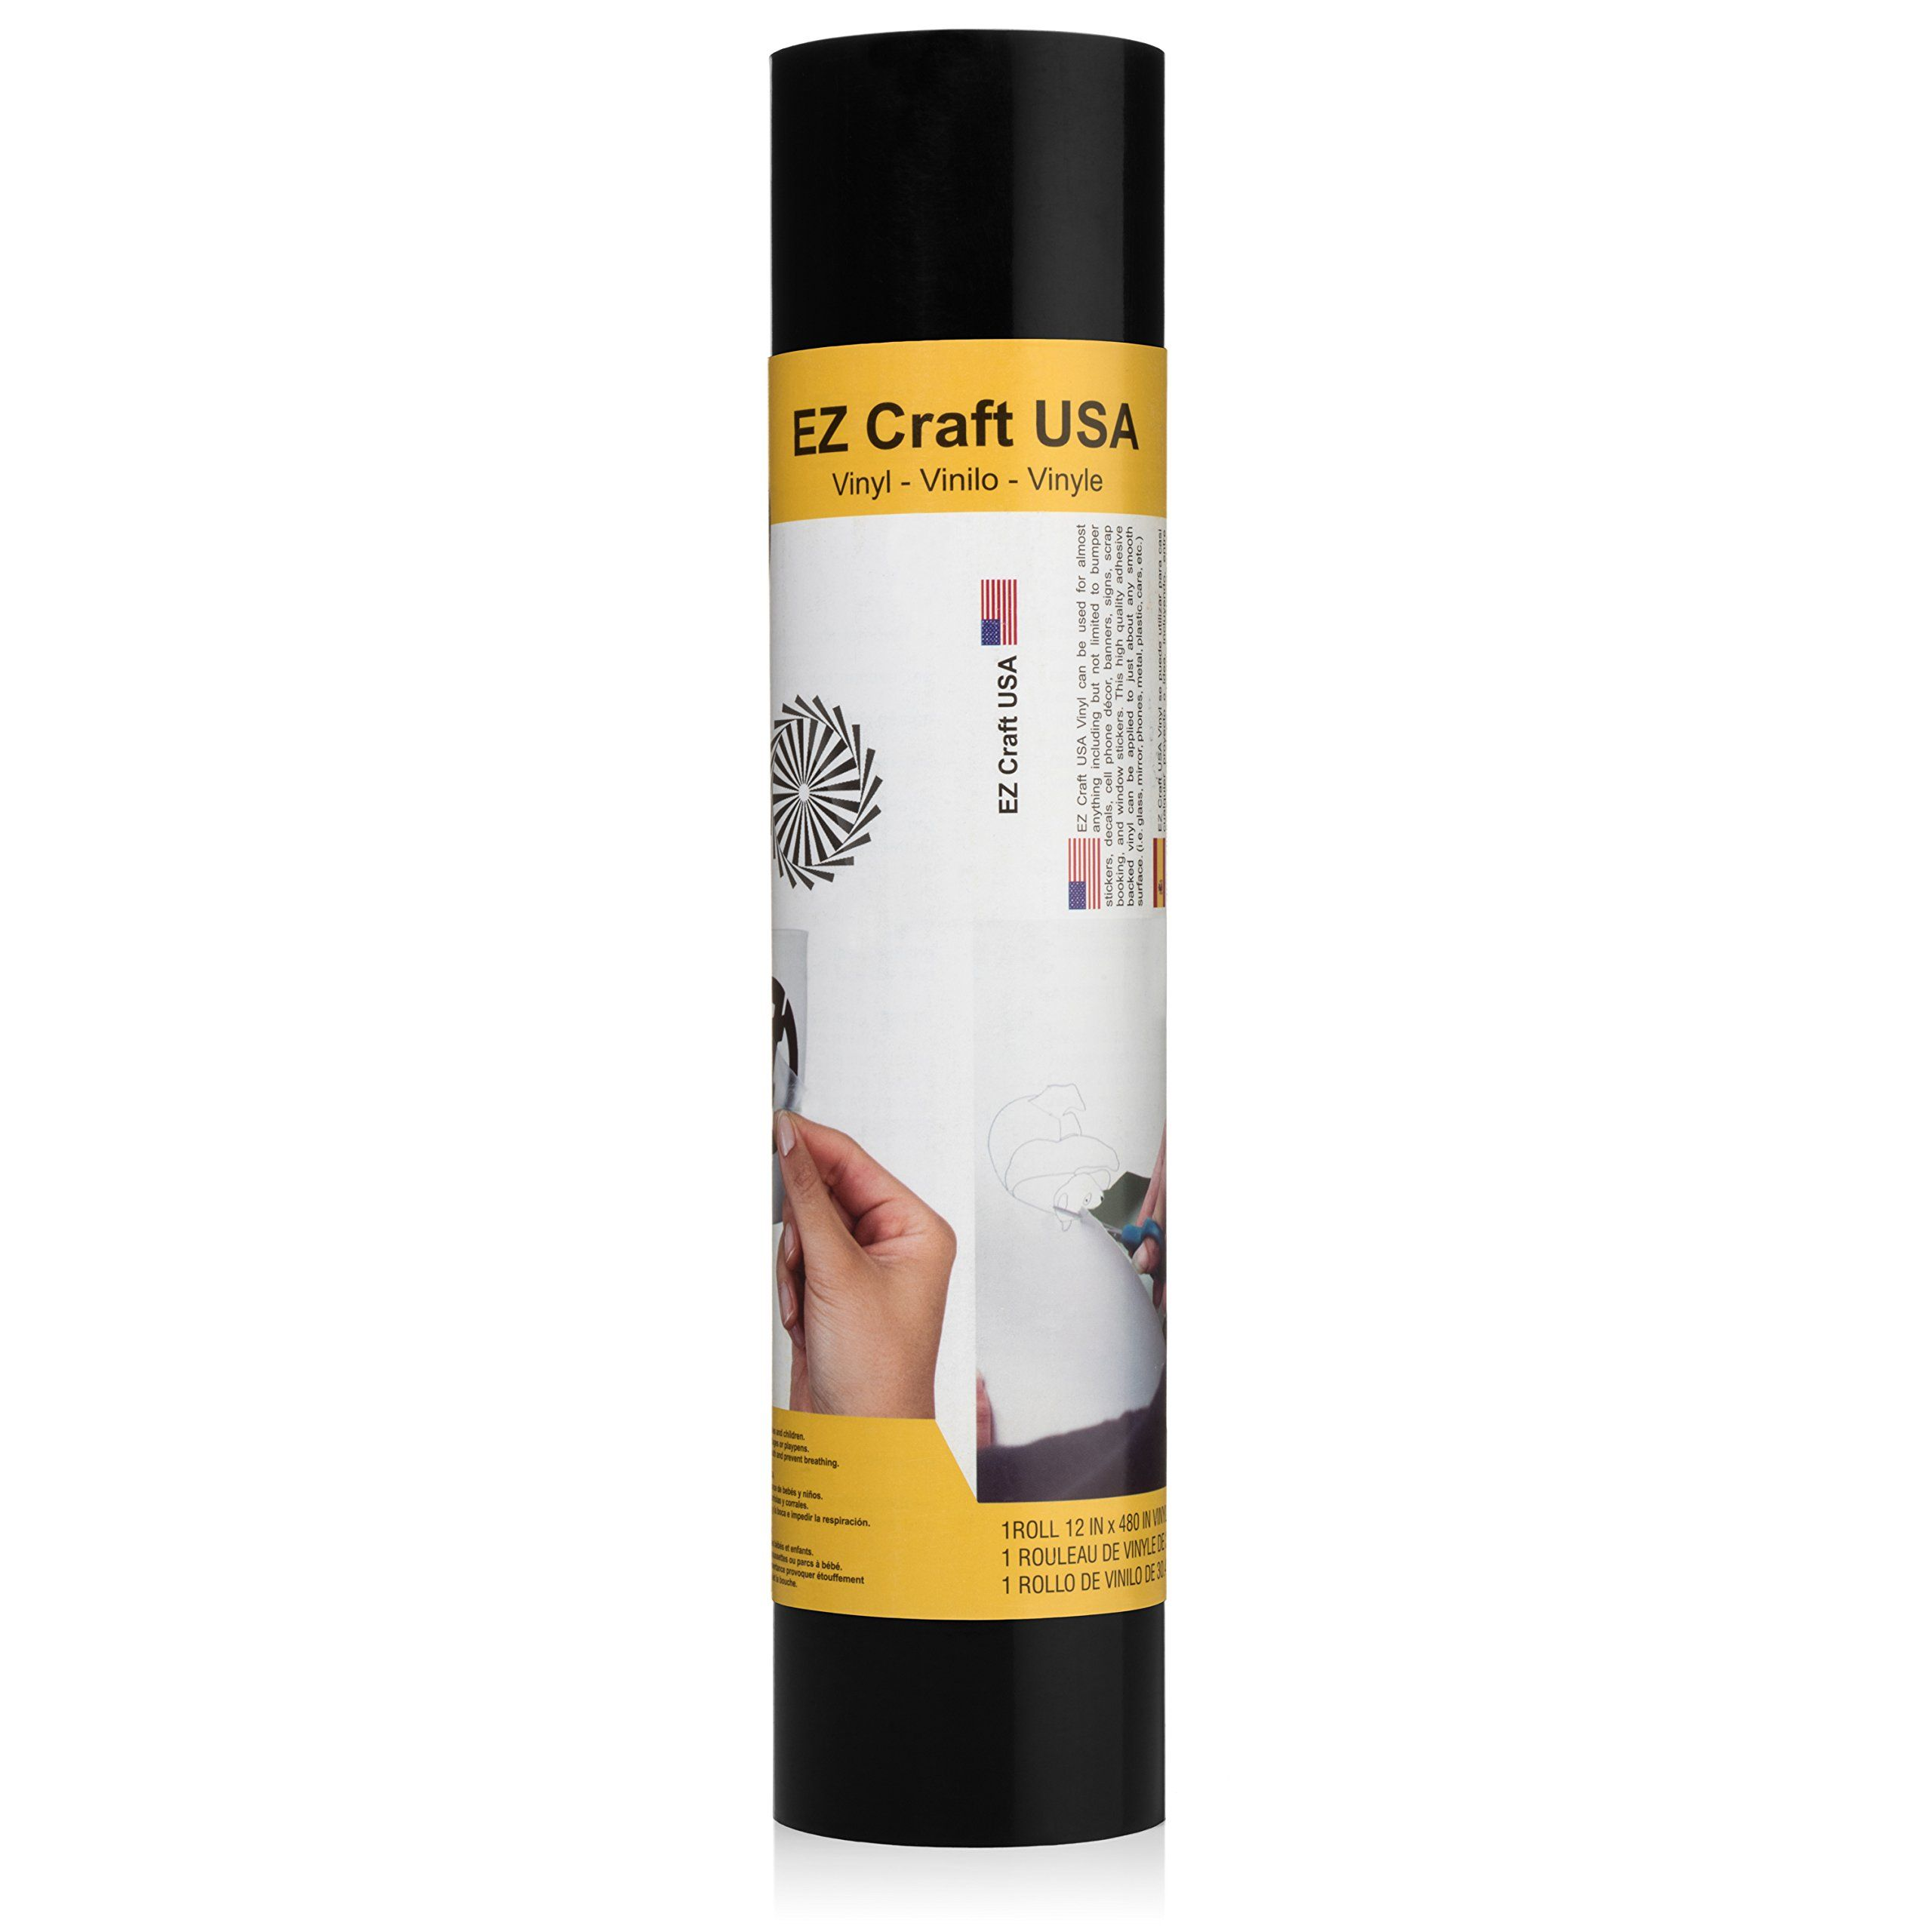 Styletech 498 Matte Black Permanent Adhesive Vinyl Roll 12 By 15 Feet For Signs Scrapbooking Cricut Silhouette Vinyl Rolls Adhesive Vinyl Silhouette Cameo